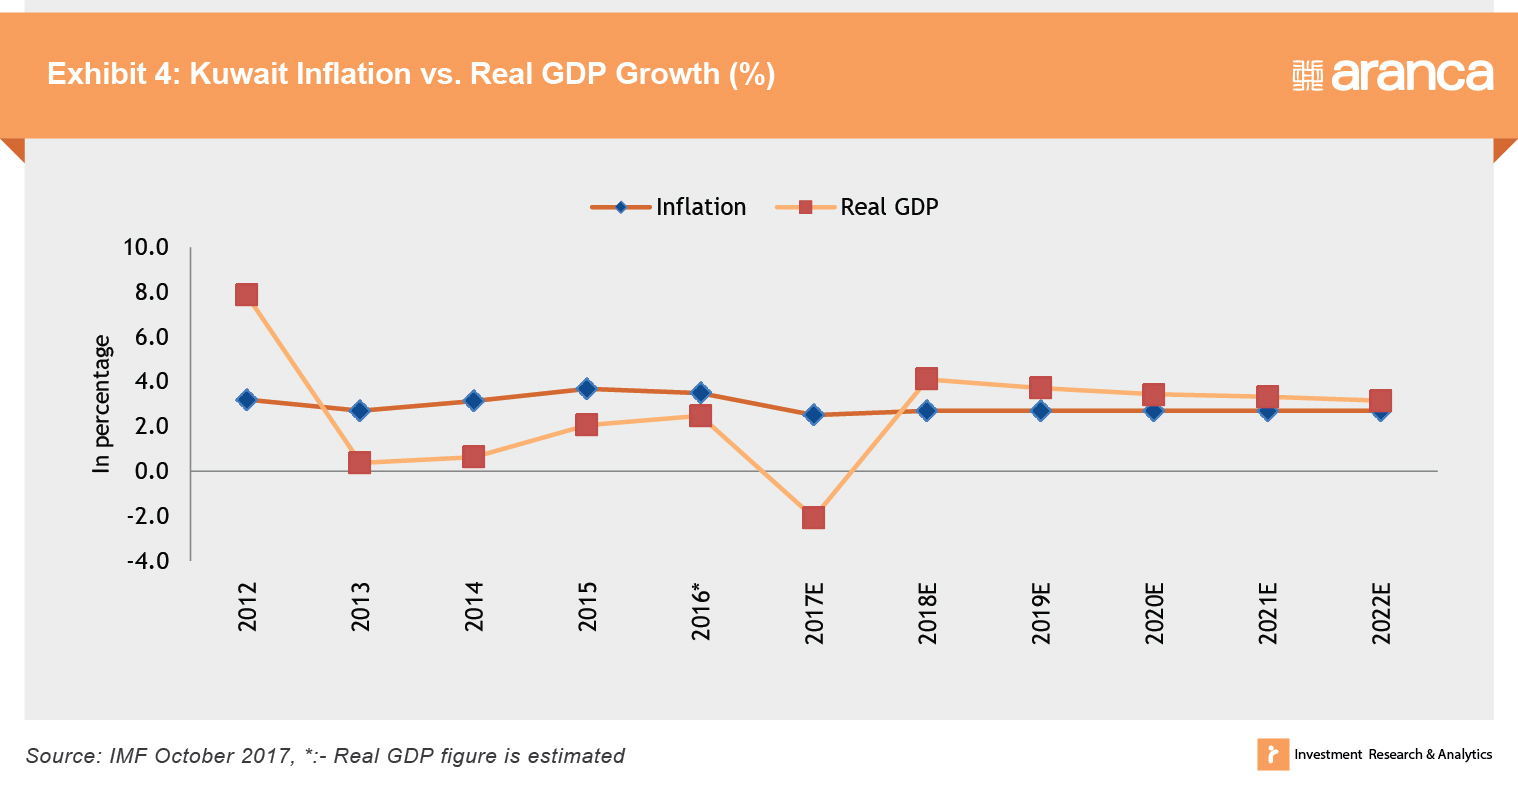 Kuwait Inflation vs. Real GDP Growth (%)